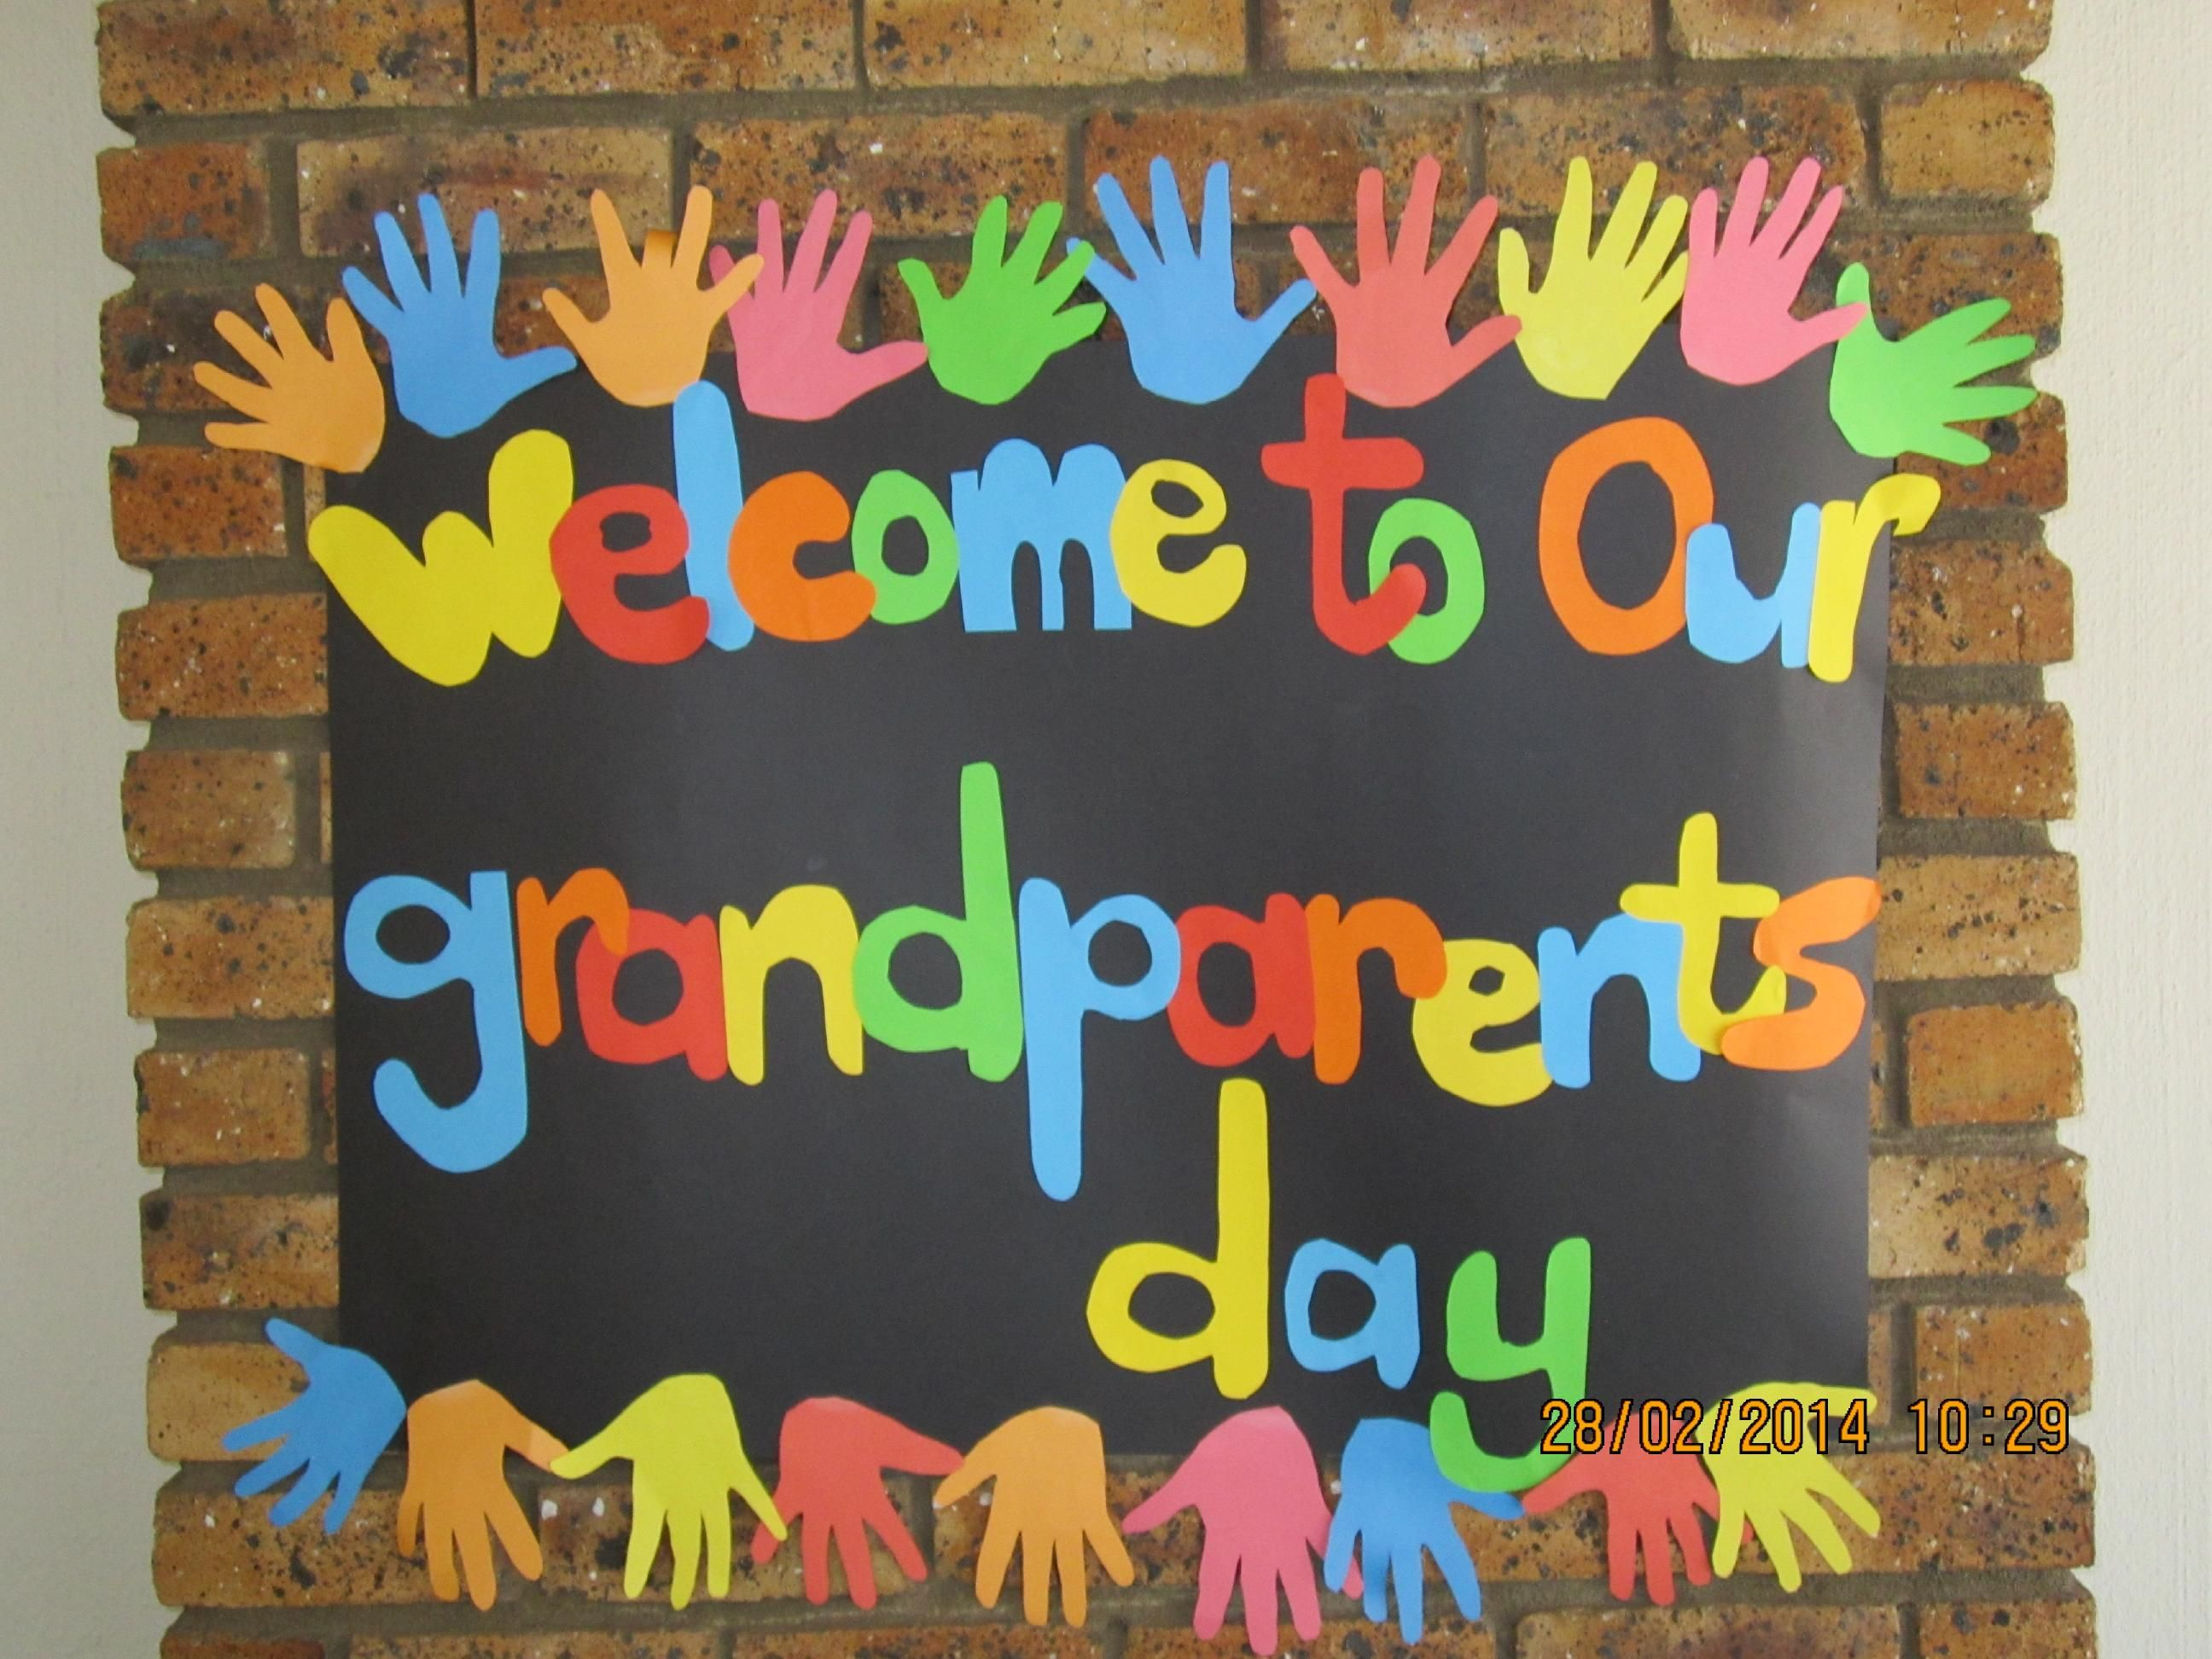 Enticing Happy Parents Day 2015 Parents Day 2015 Crafts Happy Parents Day 2015 Parents Day 2015 Crafts Parents Day Quotes From Kids Parents Day Quotes inspiration Grandparents Day Quotes